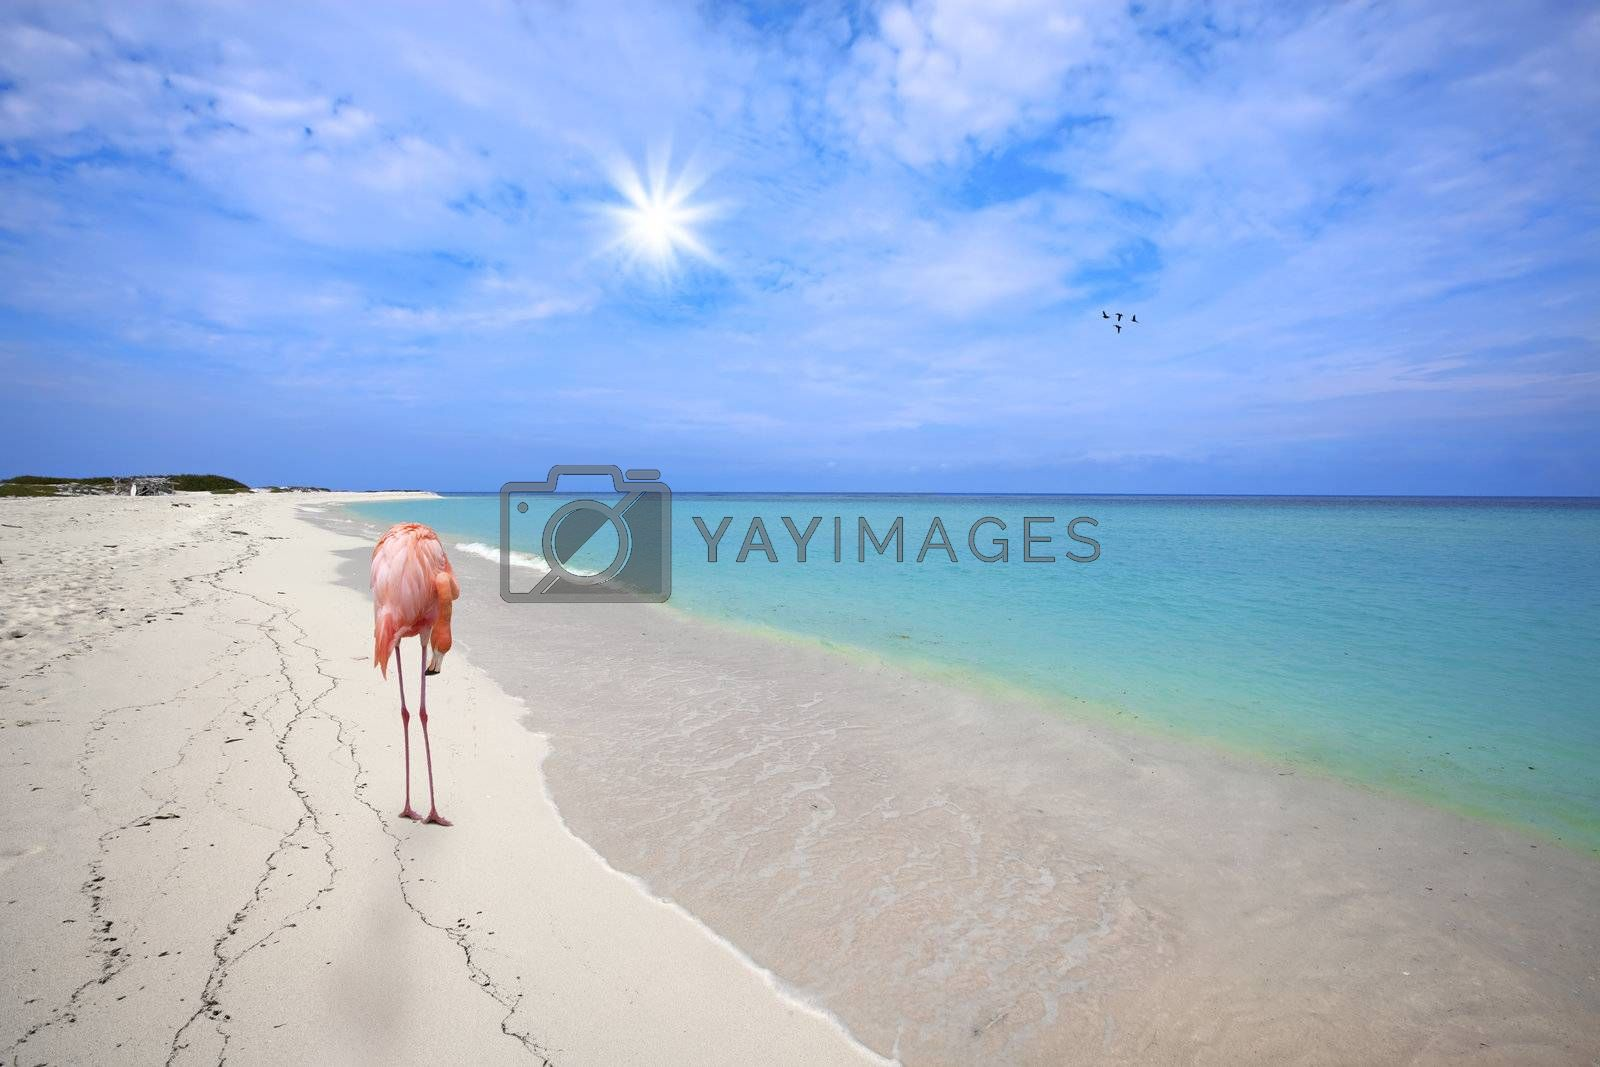 Royalty free image of Flamingo at the beach by kjorgen